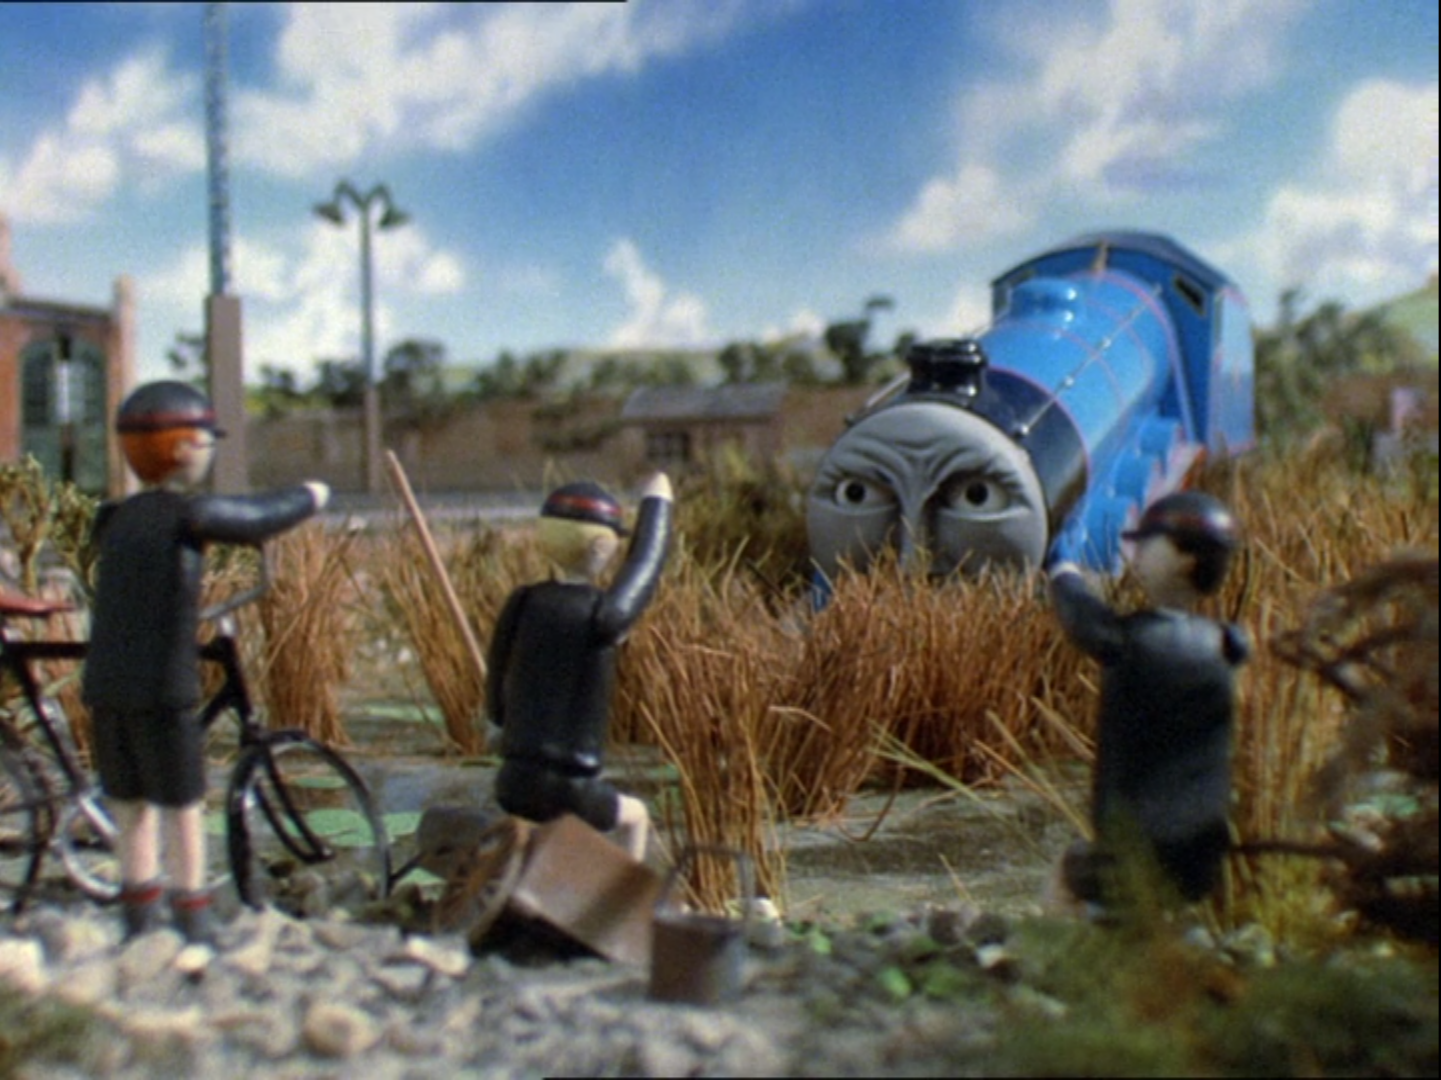 Silly Old Gordon Fell in a Ditch